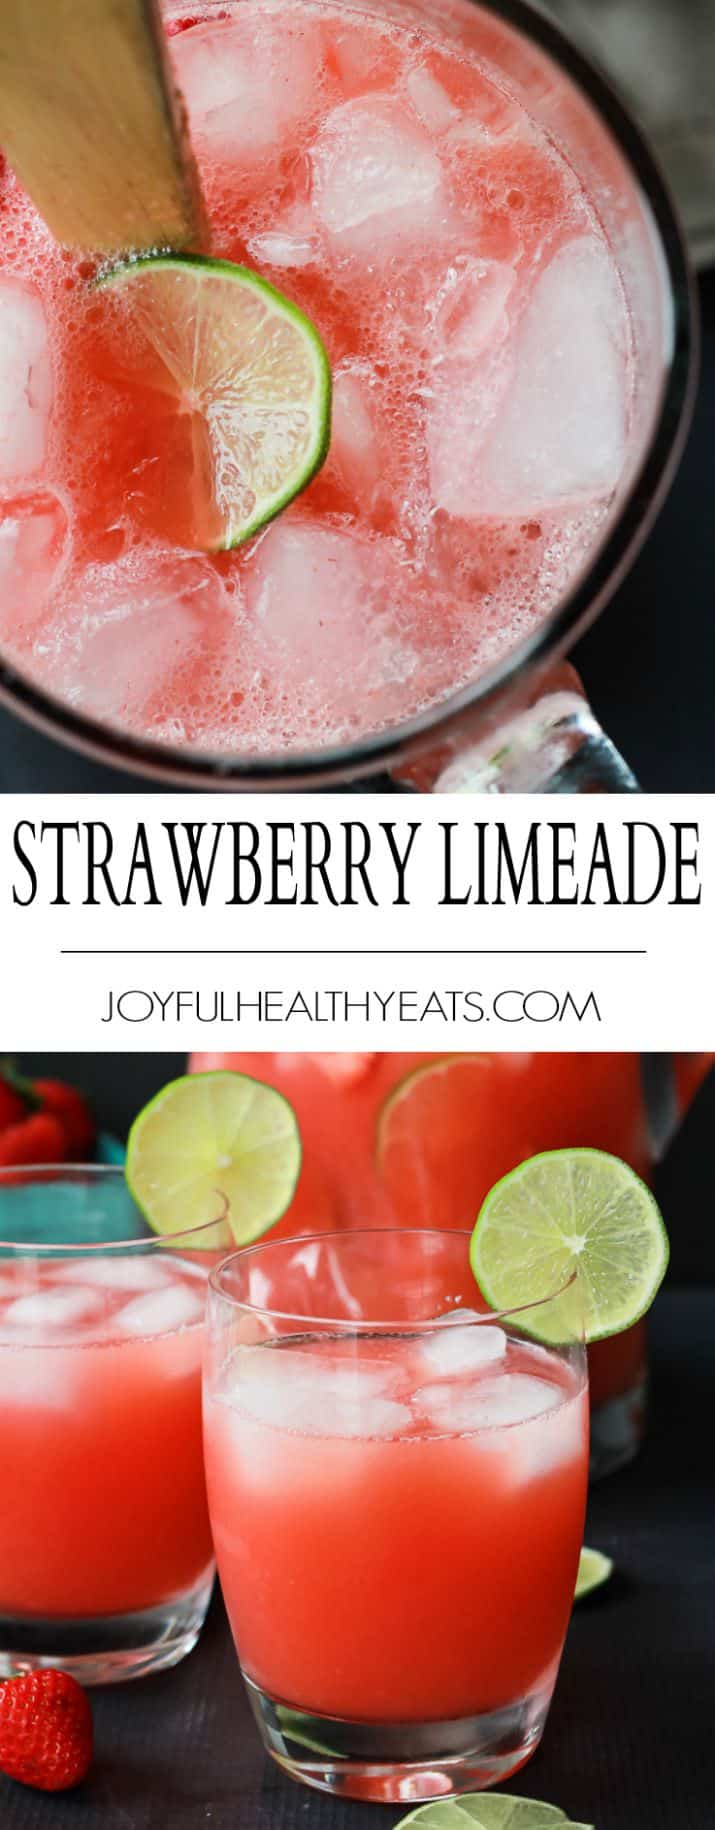 Fresh Strawberry Limeade packed with loads of fresh limes and strawberries then blended to perfection! Sweet, limey, and just what you need to cool you down this summer! | joyfulhealthyeats.com #healthy #lowcalorie